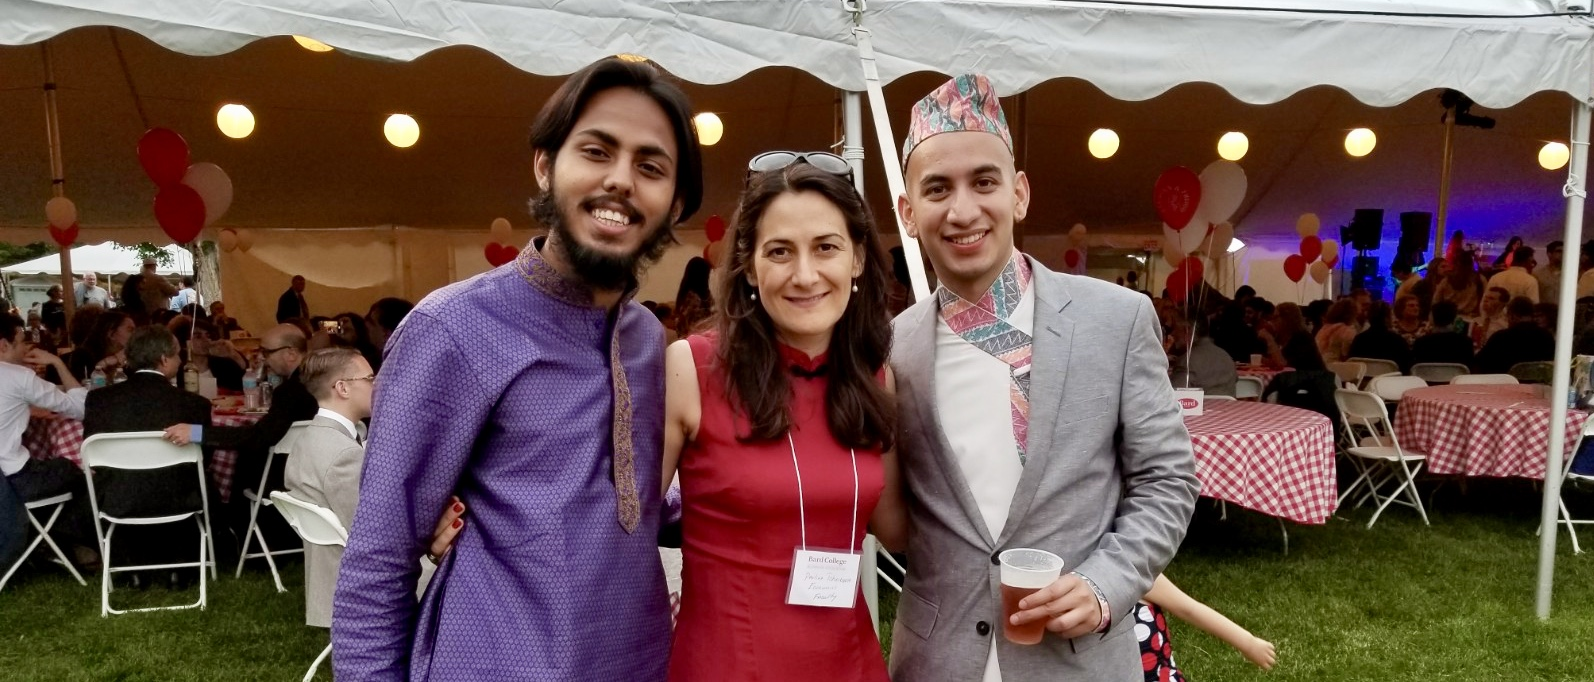 Prof. Pavlina Tcherneva with graduates Piyush Kuthethoor '17 and Pranay Panday '17 at the economic/finance alumni reception after commencement.